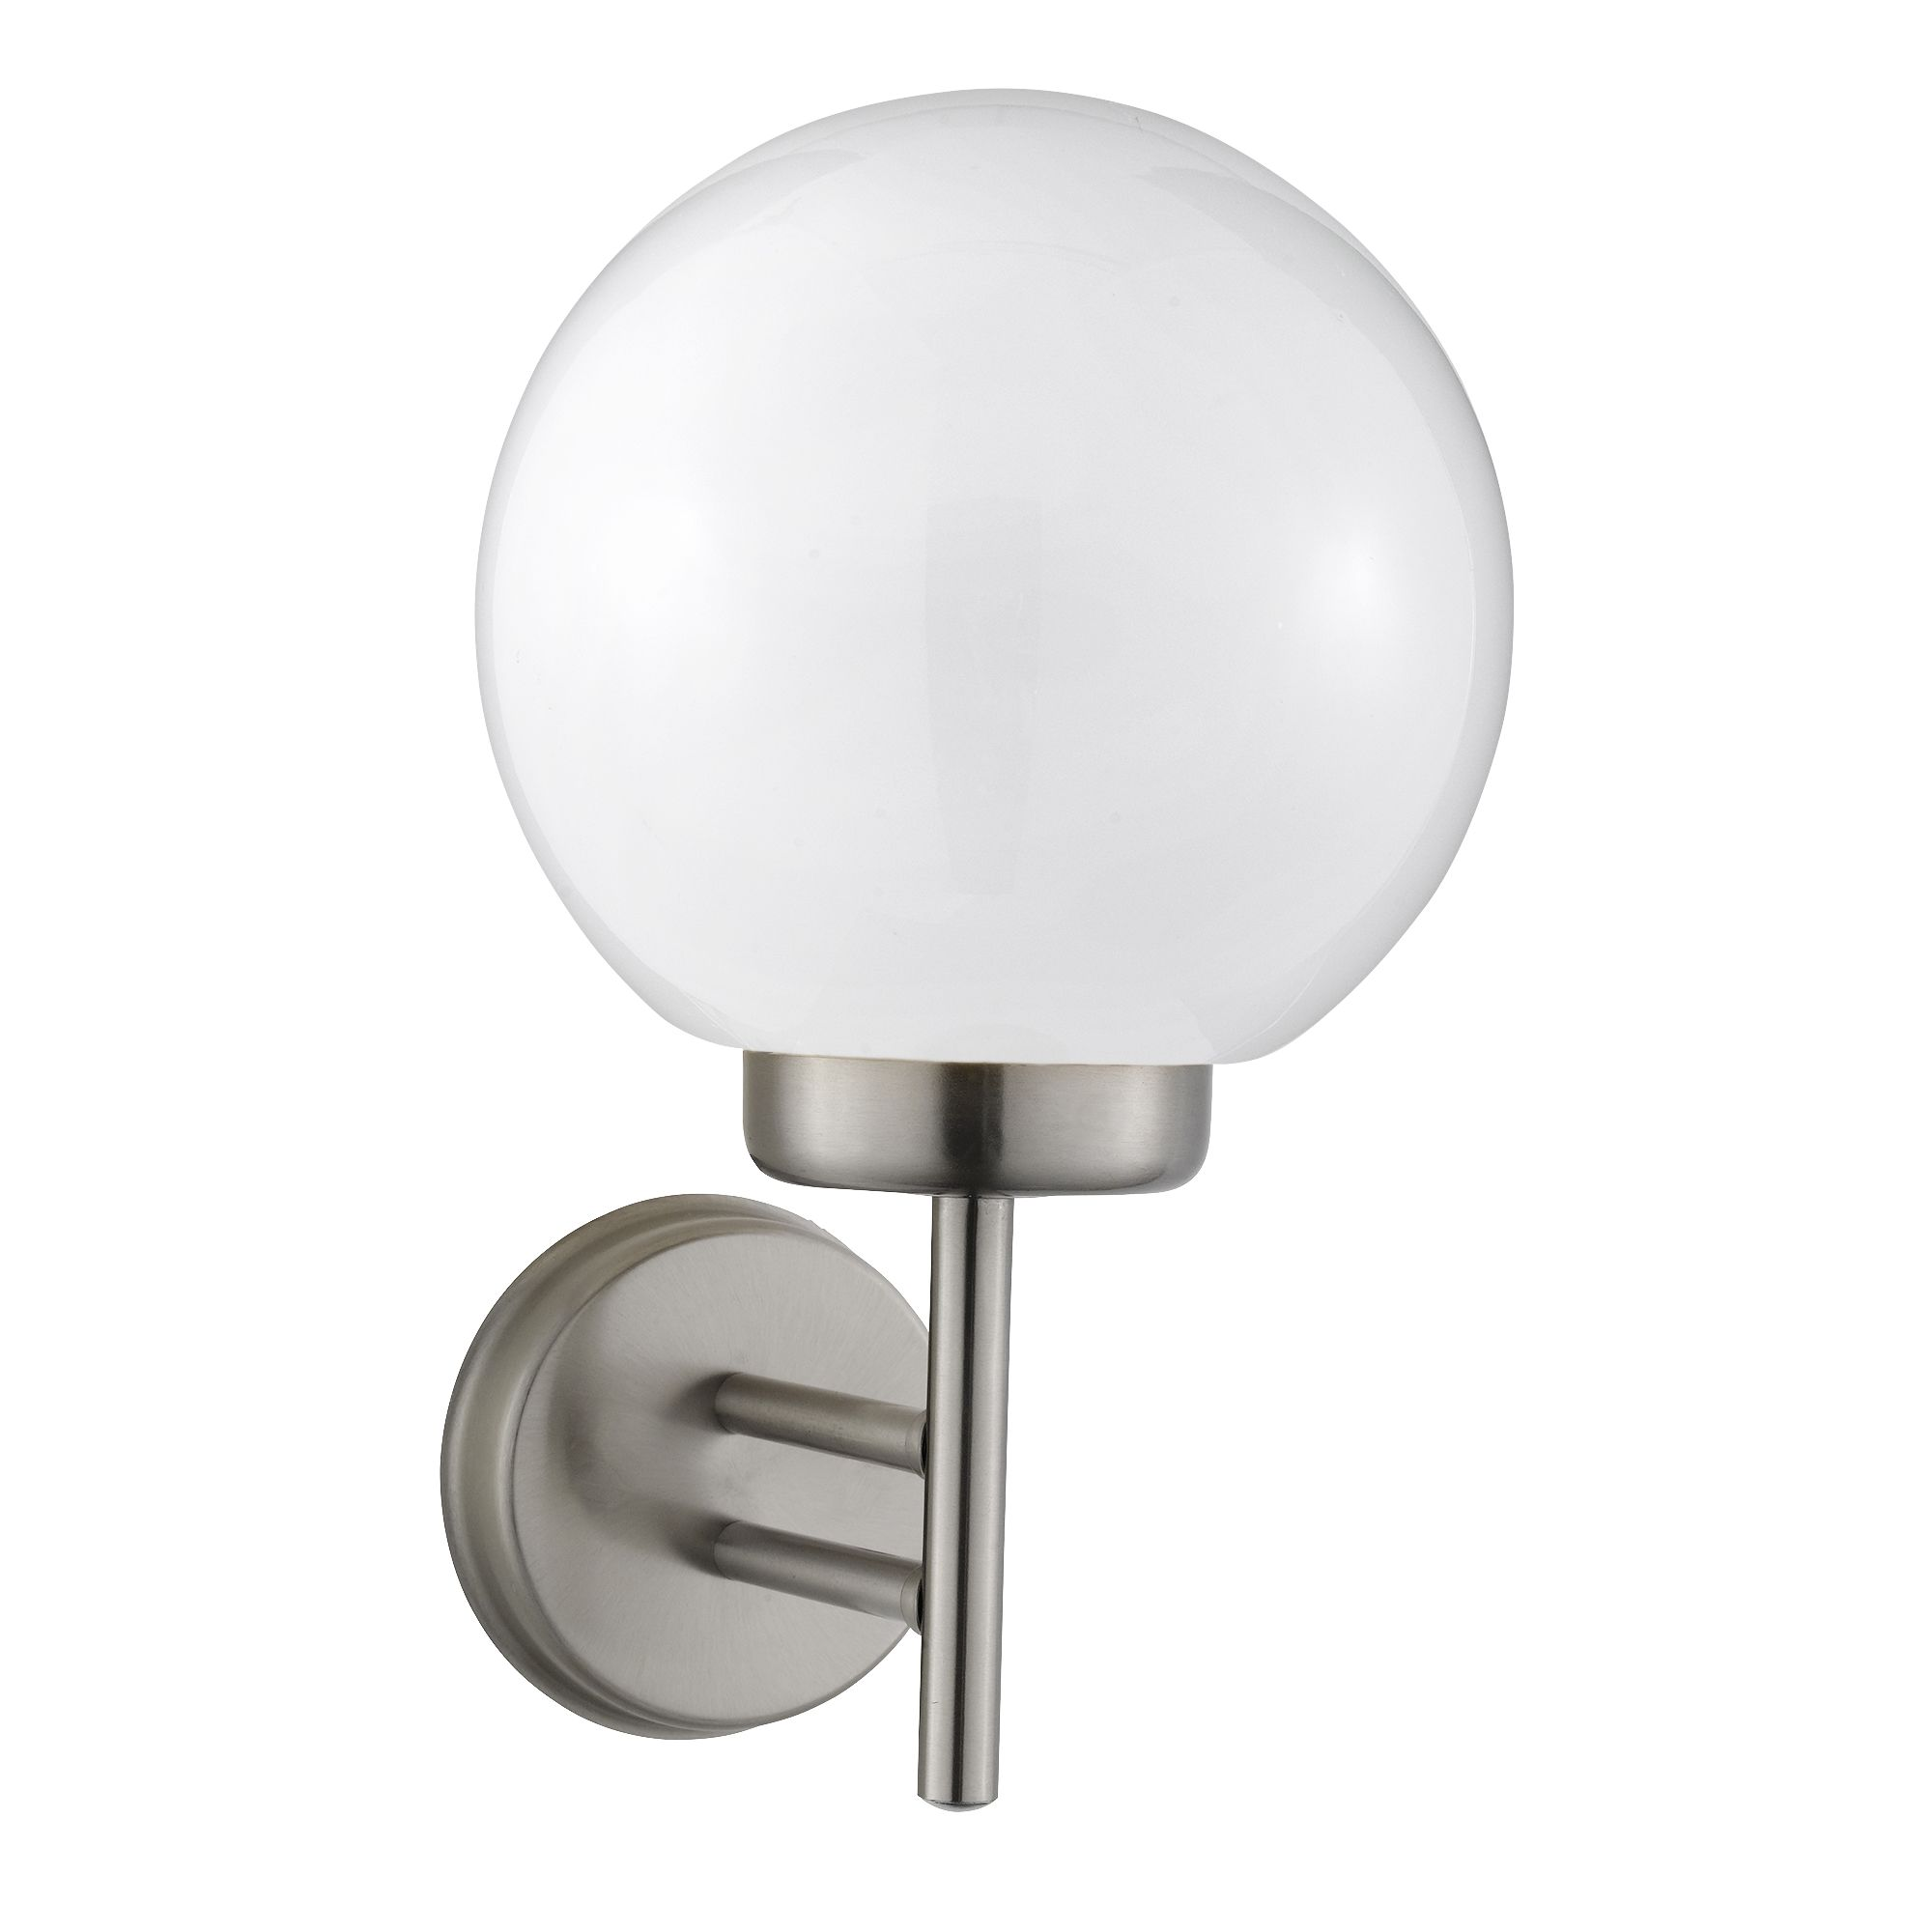 Orb Outdoor Wall Bracket, Stainless Steel, Polycarbonate Shade